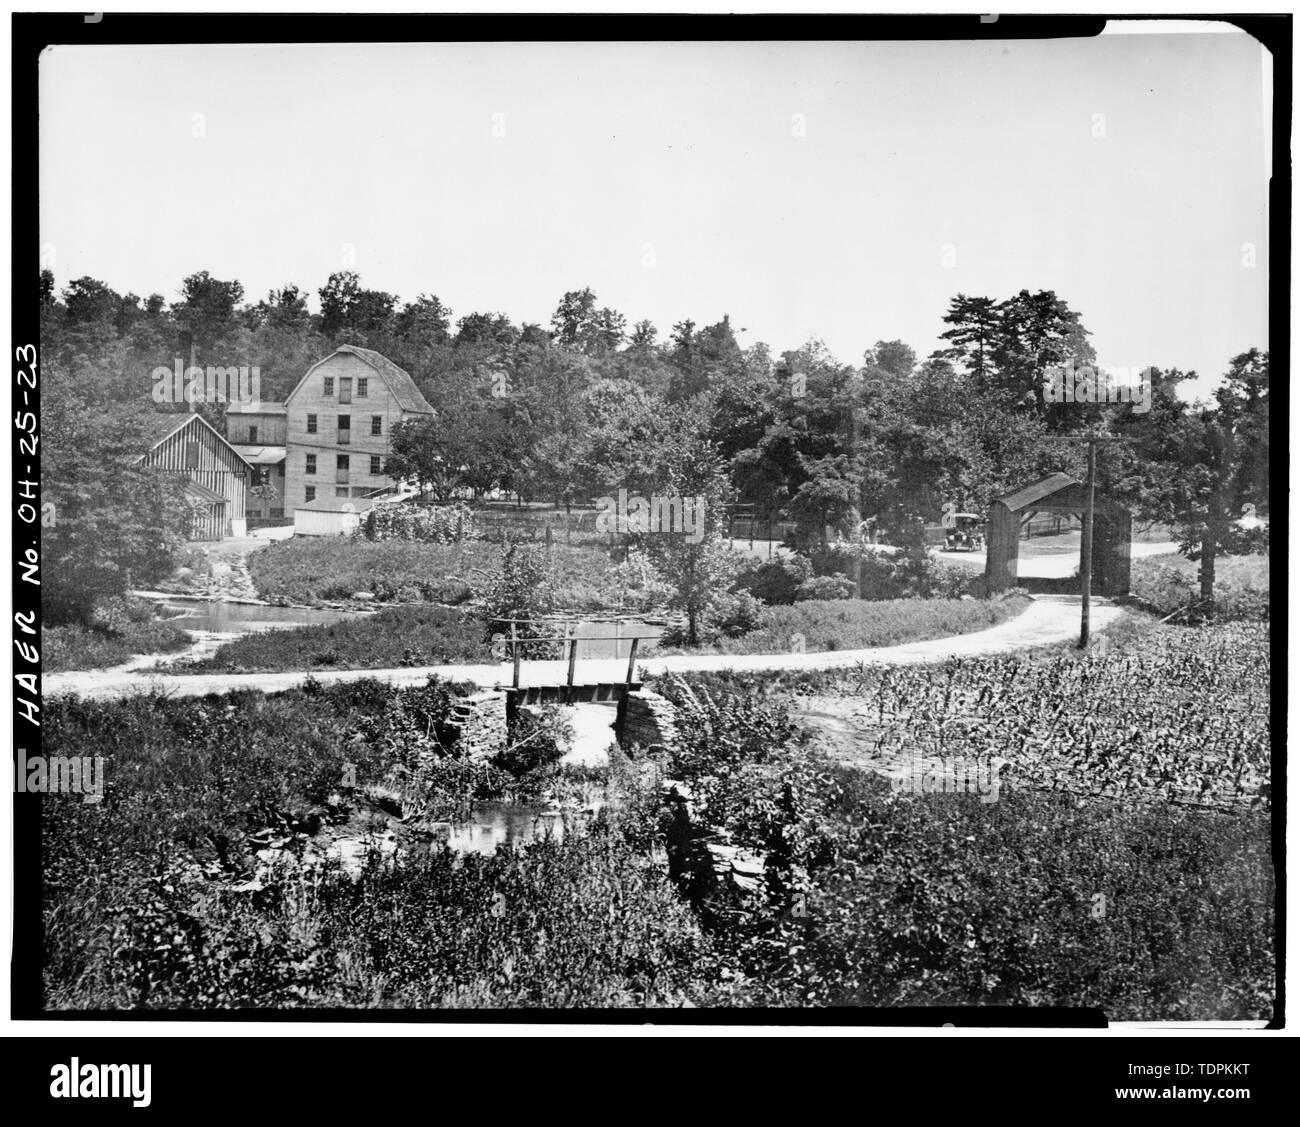 source and date unknown. VIEW FROM NORTHEAST SHOWING COVERED BRIDGE, BARN, MILL AND HOUSE - Mount Healthy Mill, Covered Bridge Road, Mount Healthy, Hamilton County, OH - Stock Image